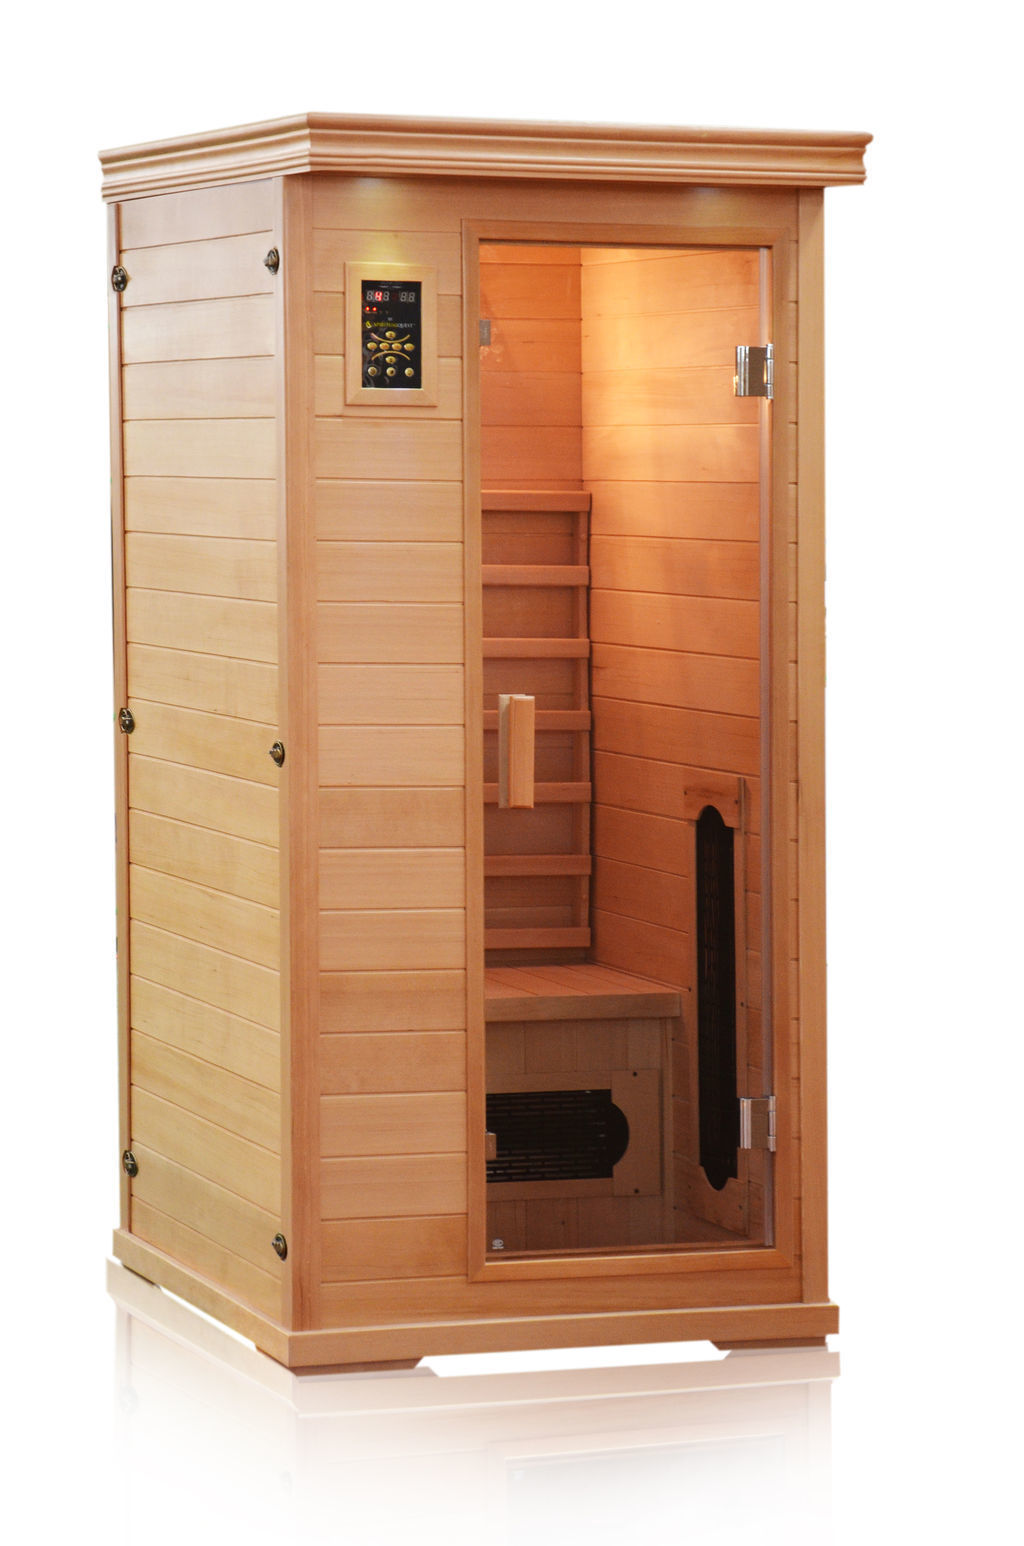 Executive Single Person Infrared Sauna - Ultra Low EMF - 36x36x75""